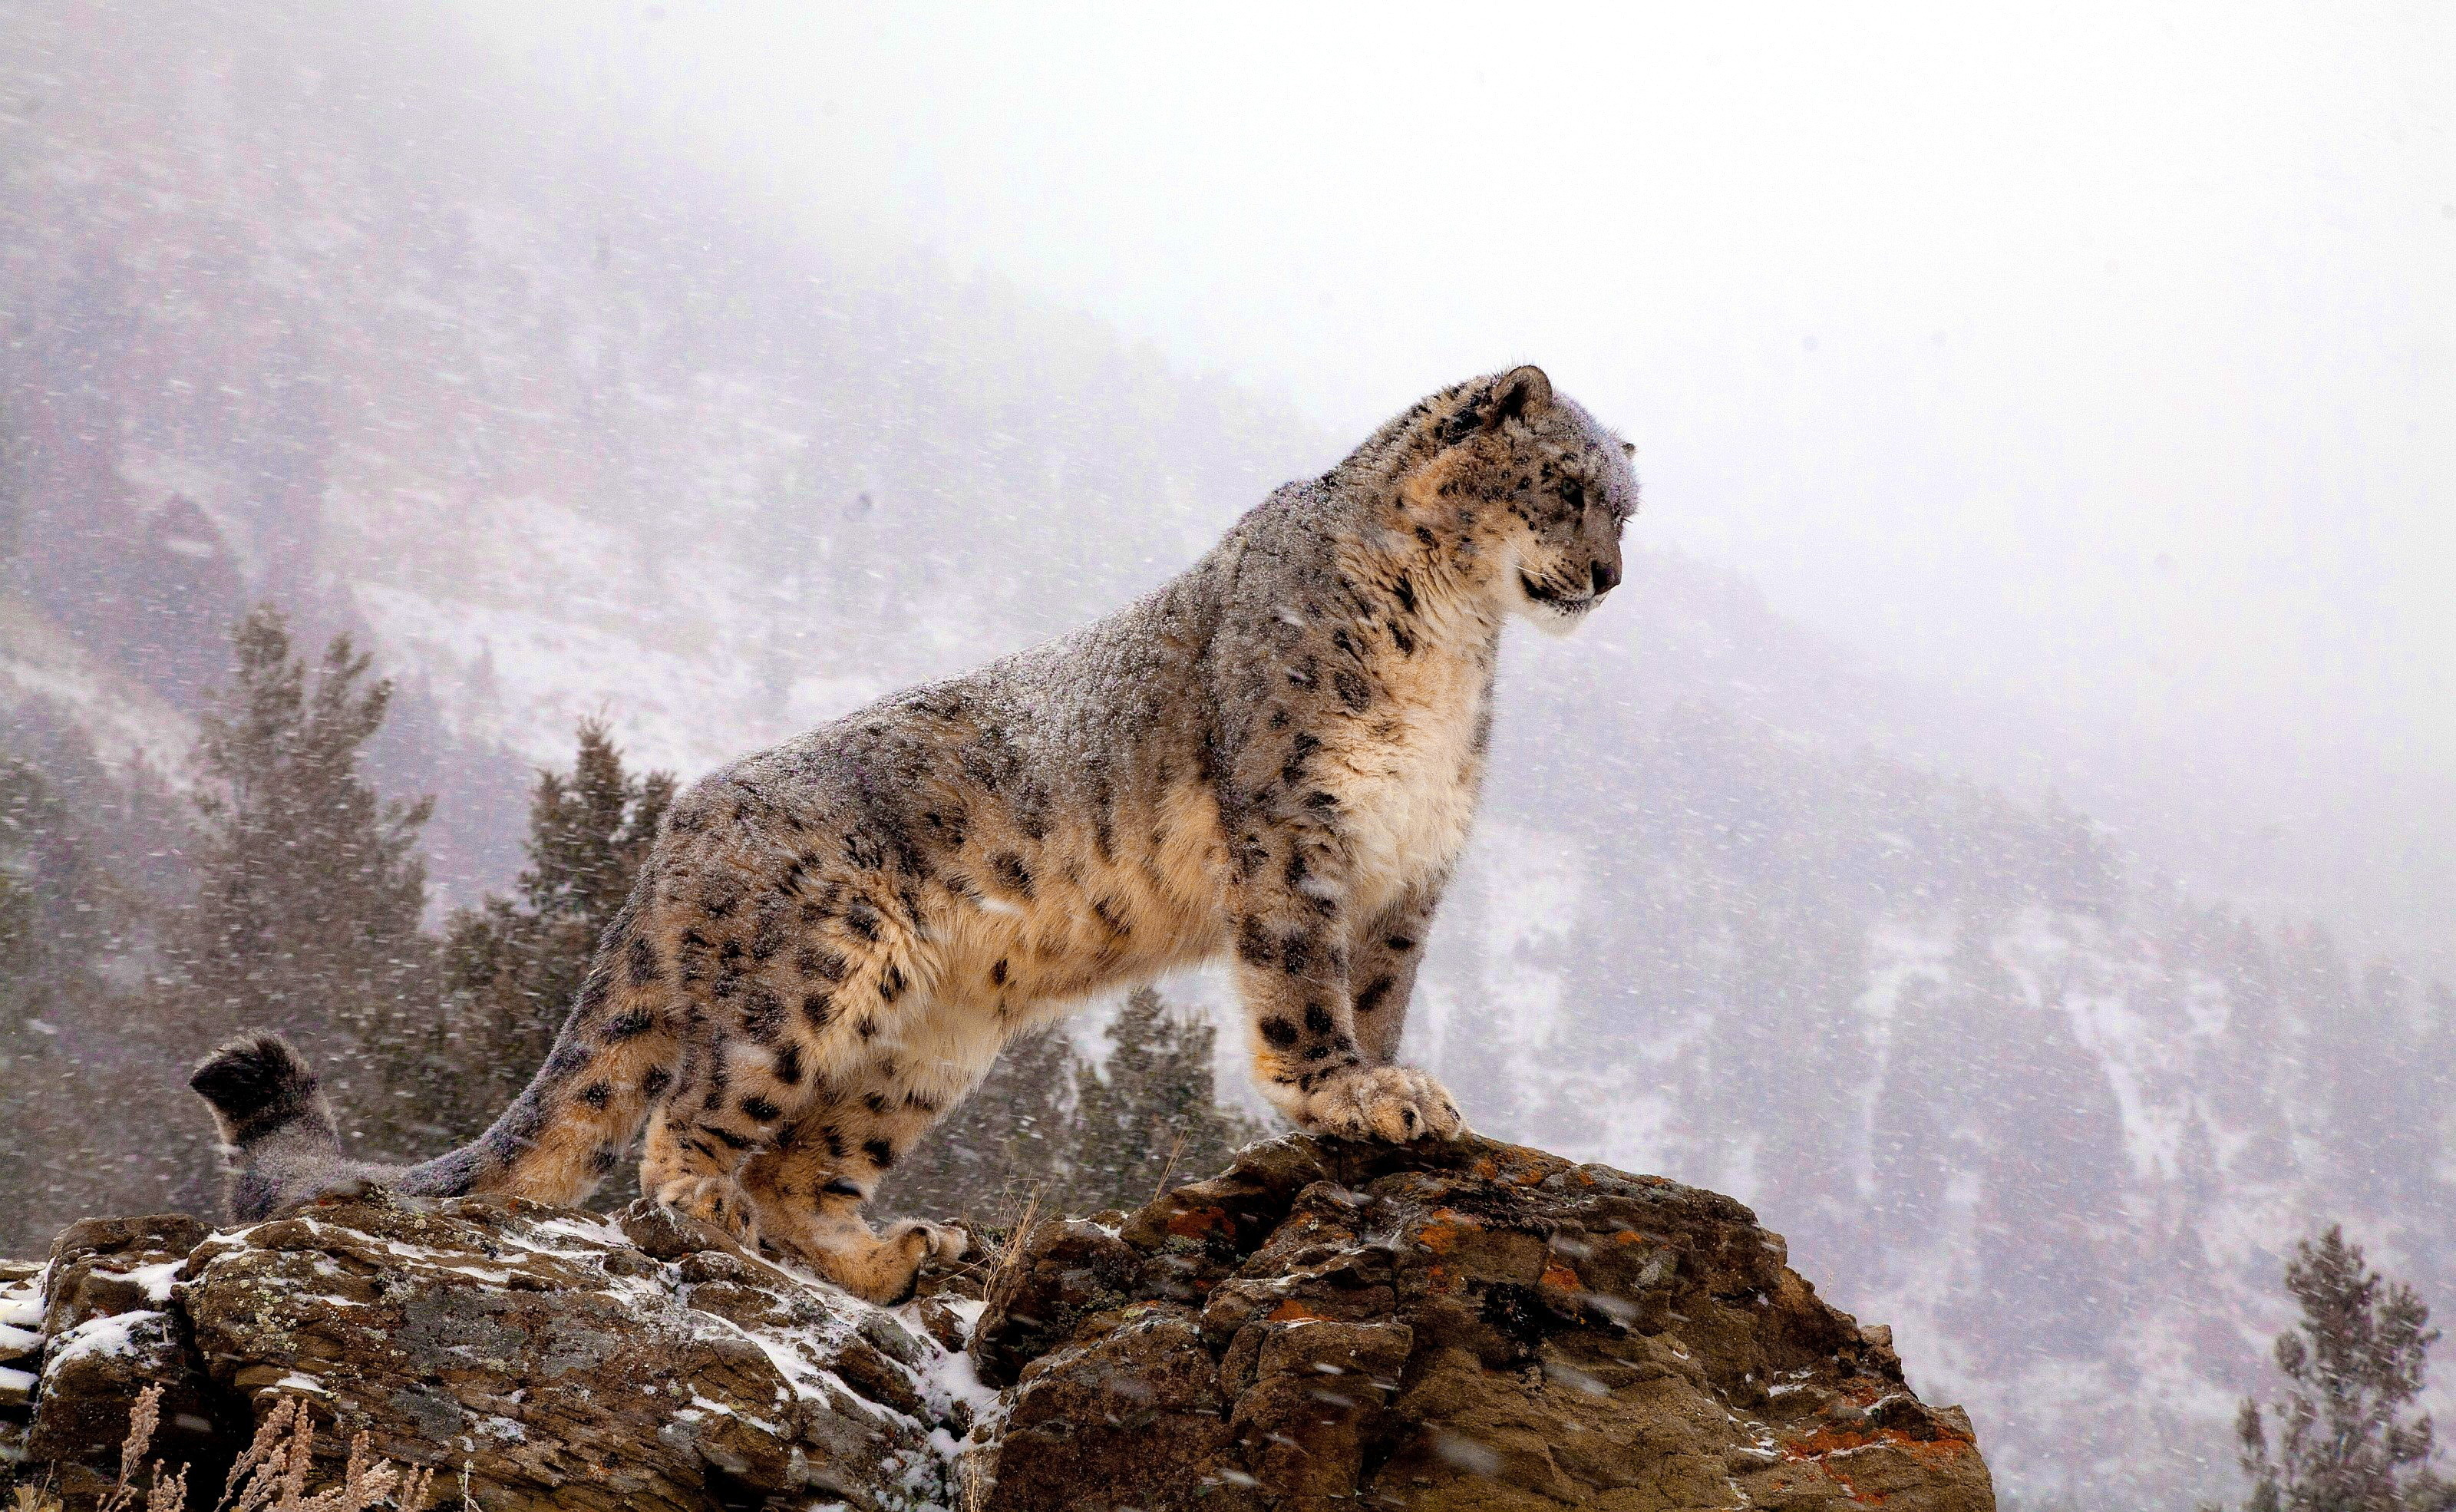 Snow Leopard Tracking in Hemis National Park